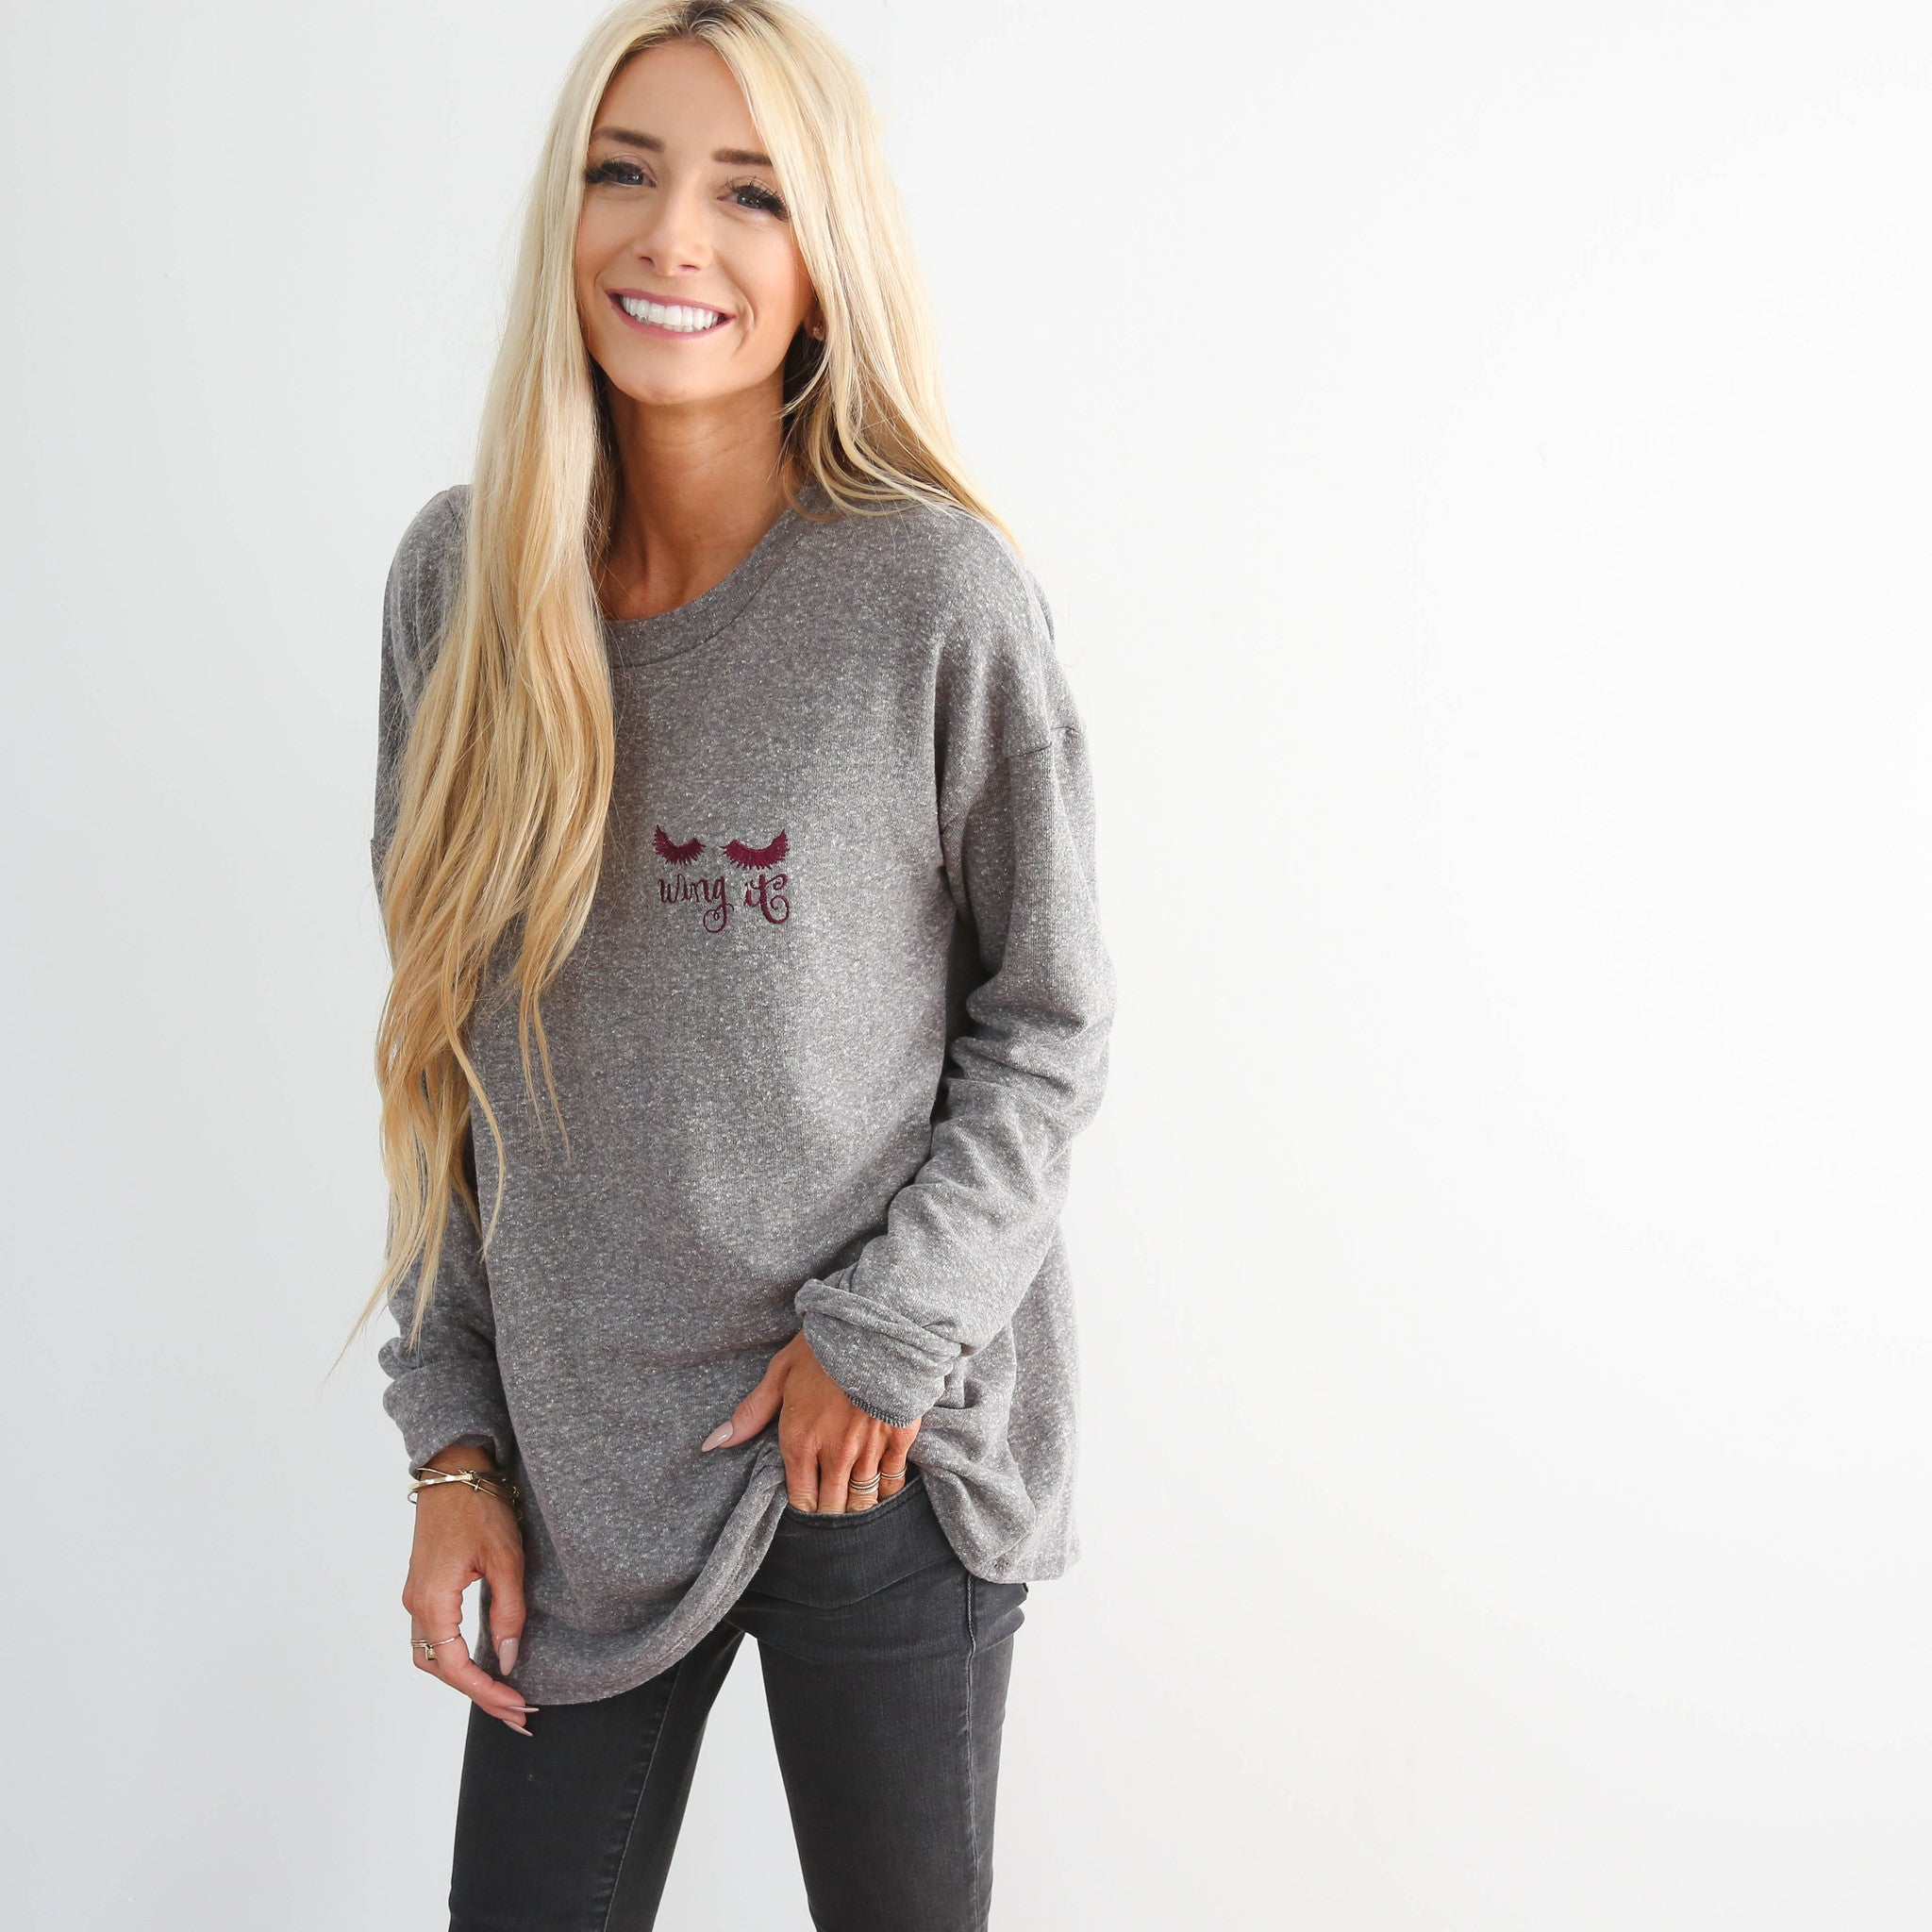 Wing It Sweater in Charcoal